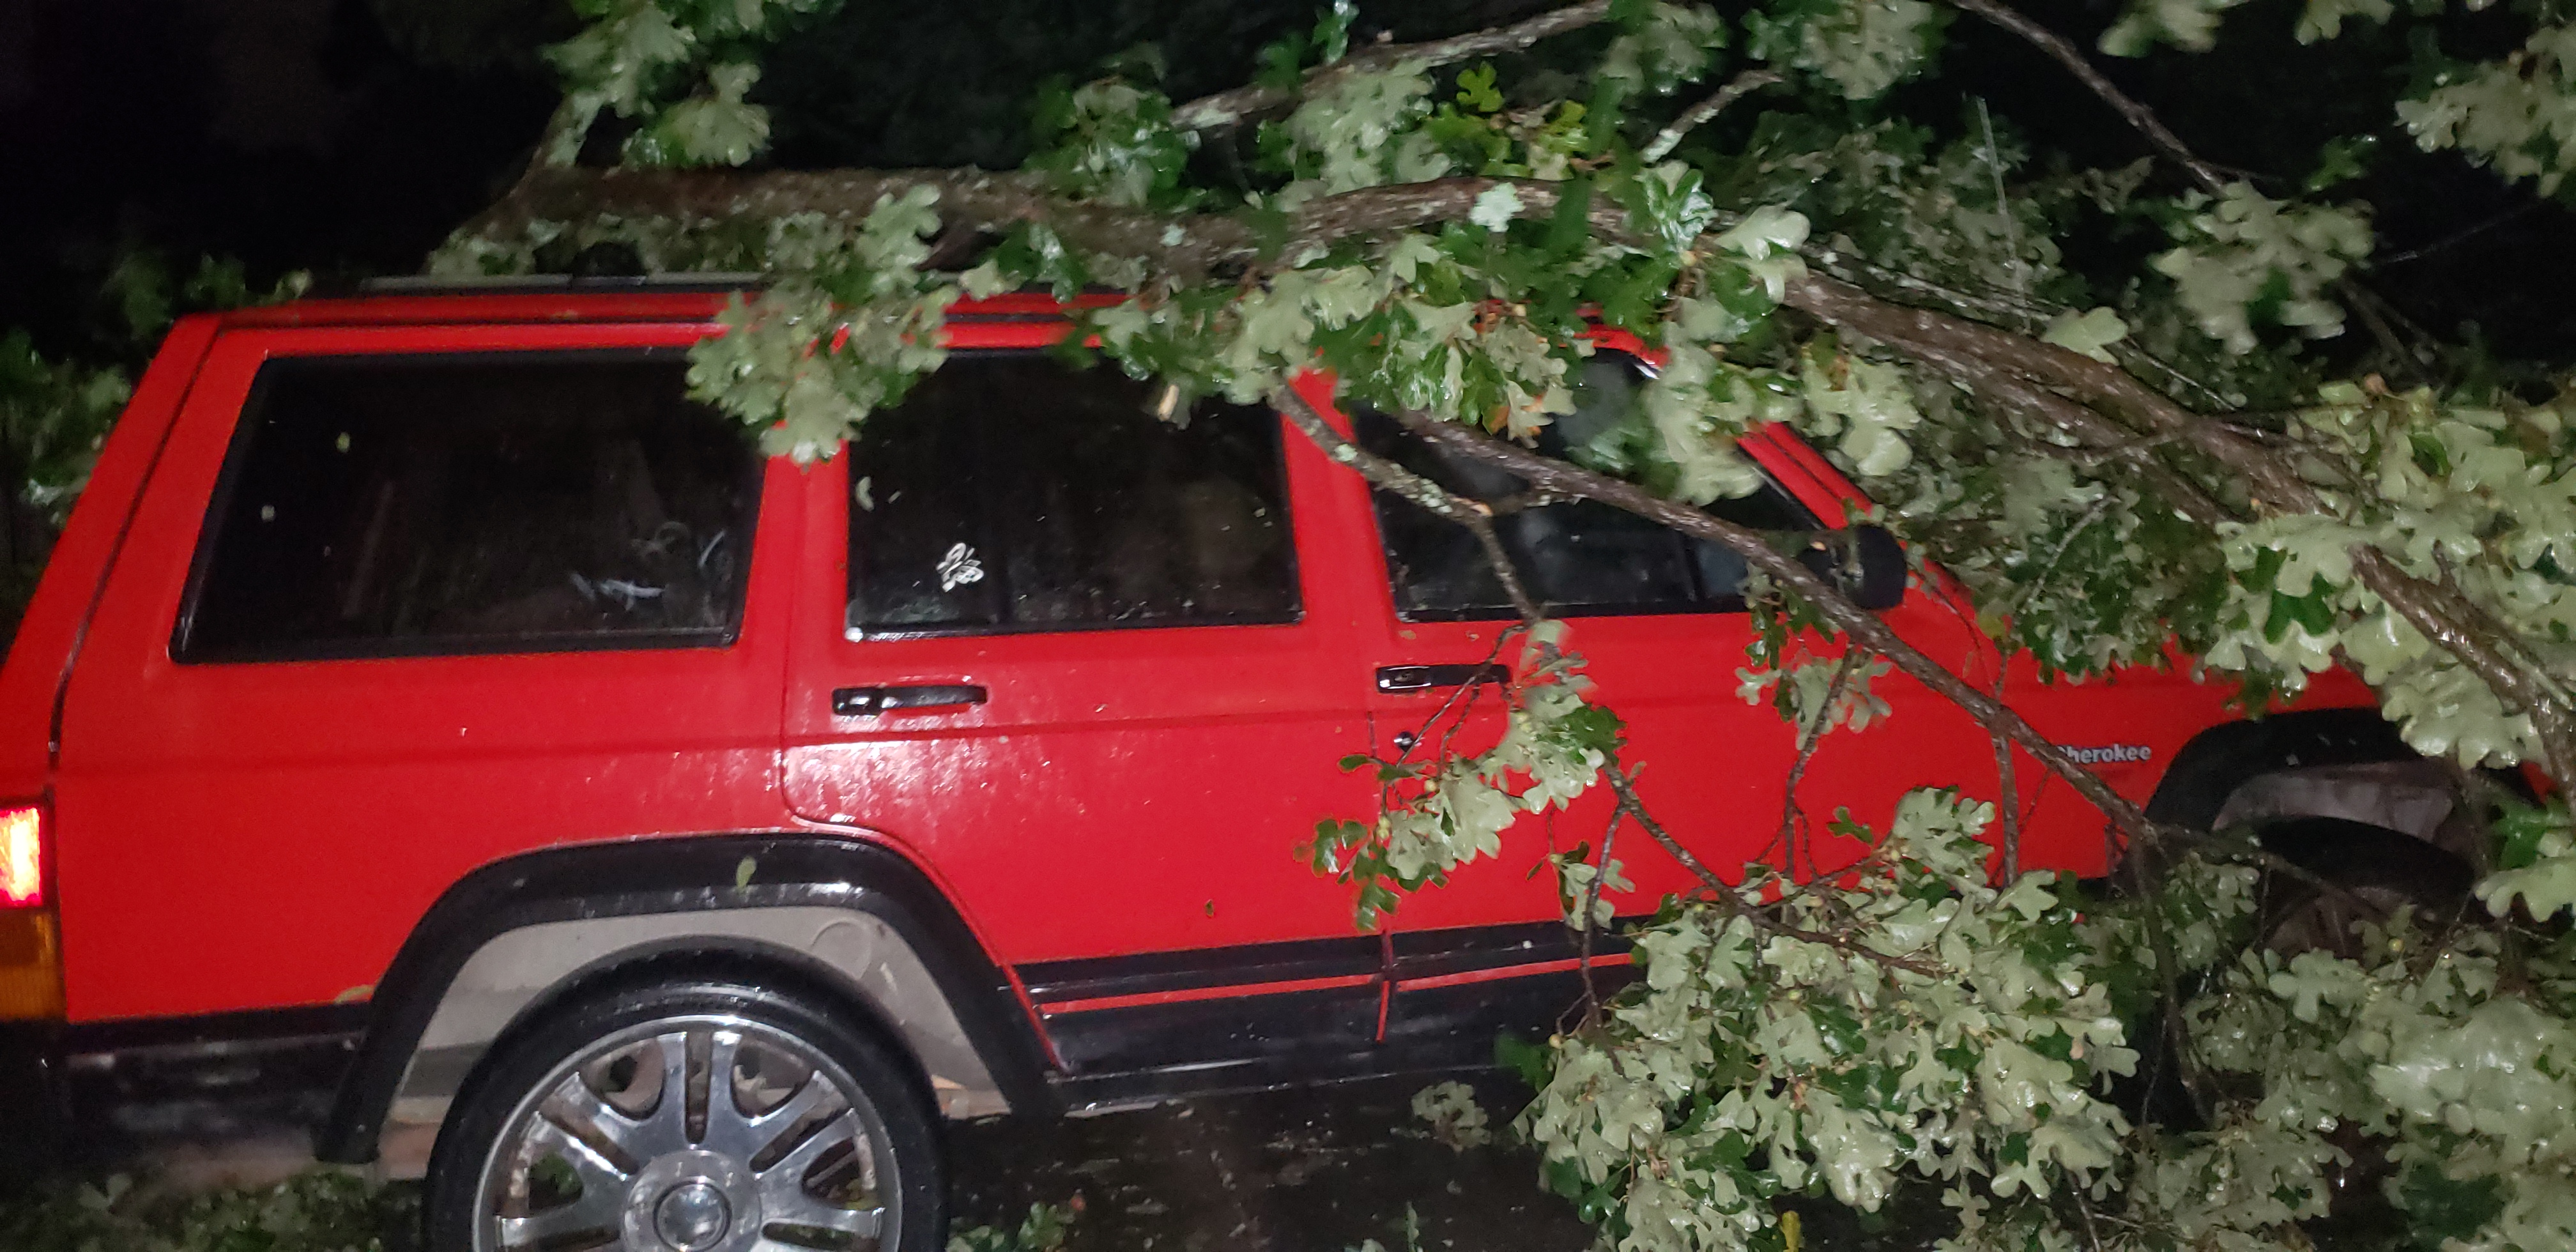 <div class='meta'><div class='origin-logo' data-origin='WTVD'></div><span class='caption-text' data-credit='ABC11 Eyewitness - Tonya jean'>A tree fell on a Jeep and busted the tires on the left side and possibly broke the driver's door, according to the owner</span></div>